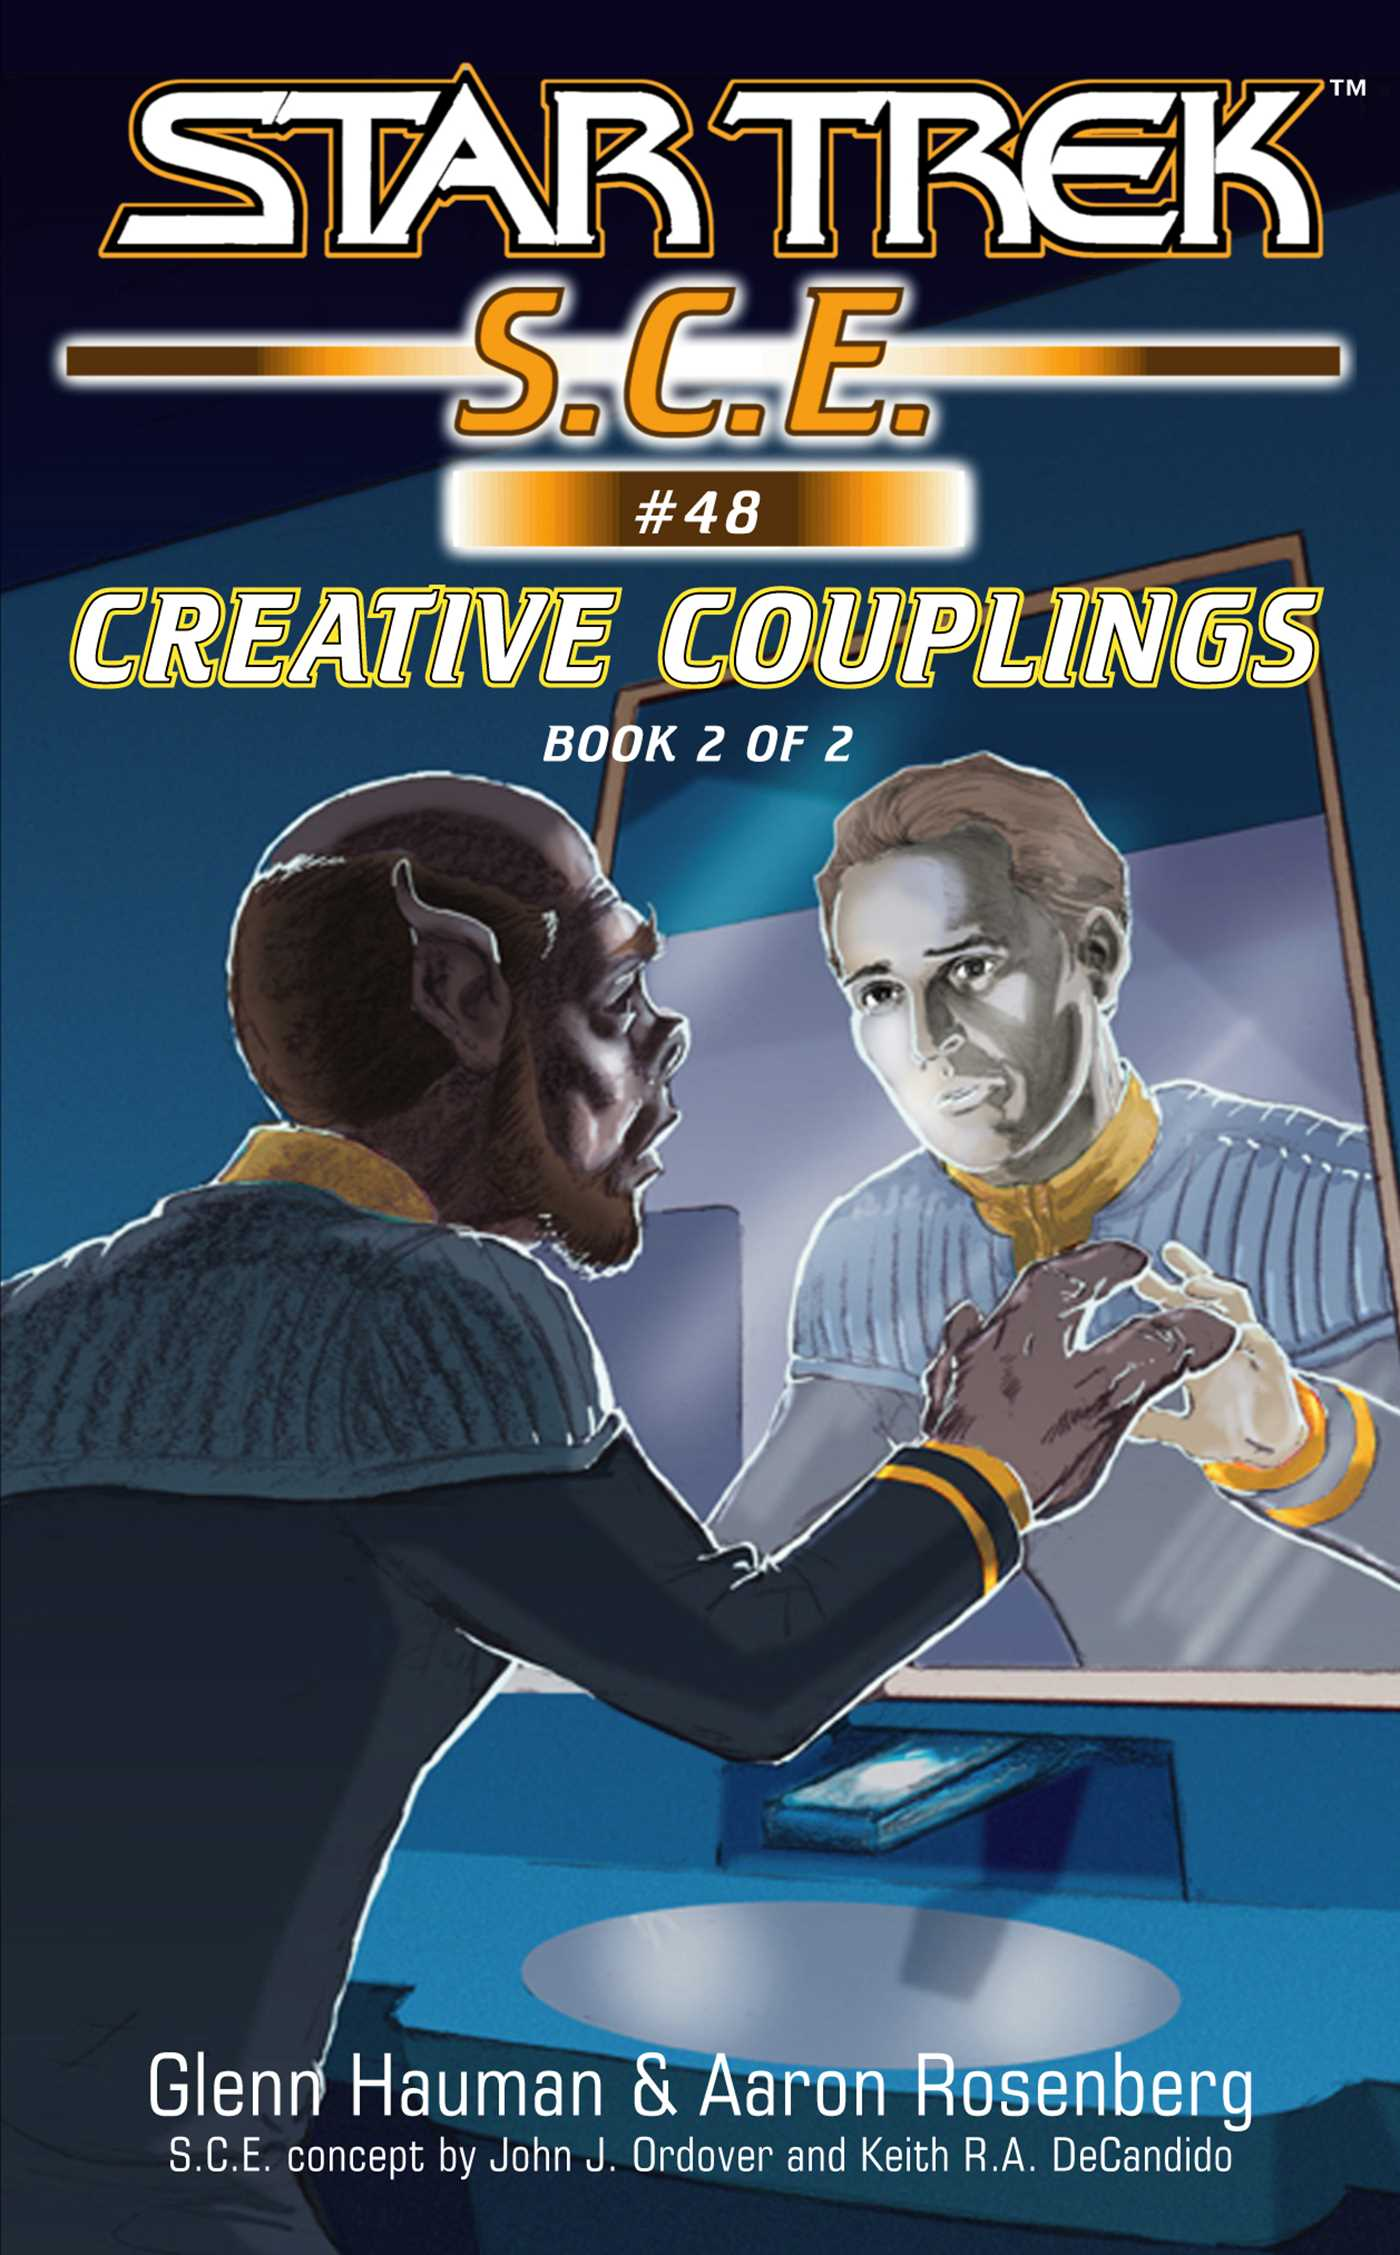 Star-trek-creative-couplings-book-2-9780743496896_hr